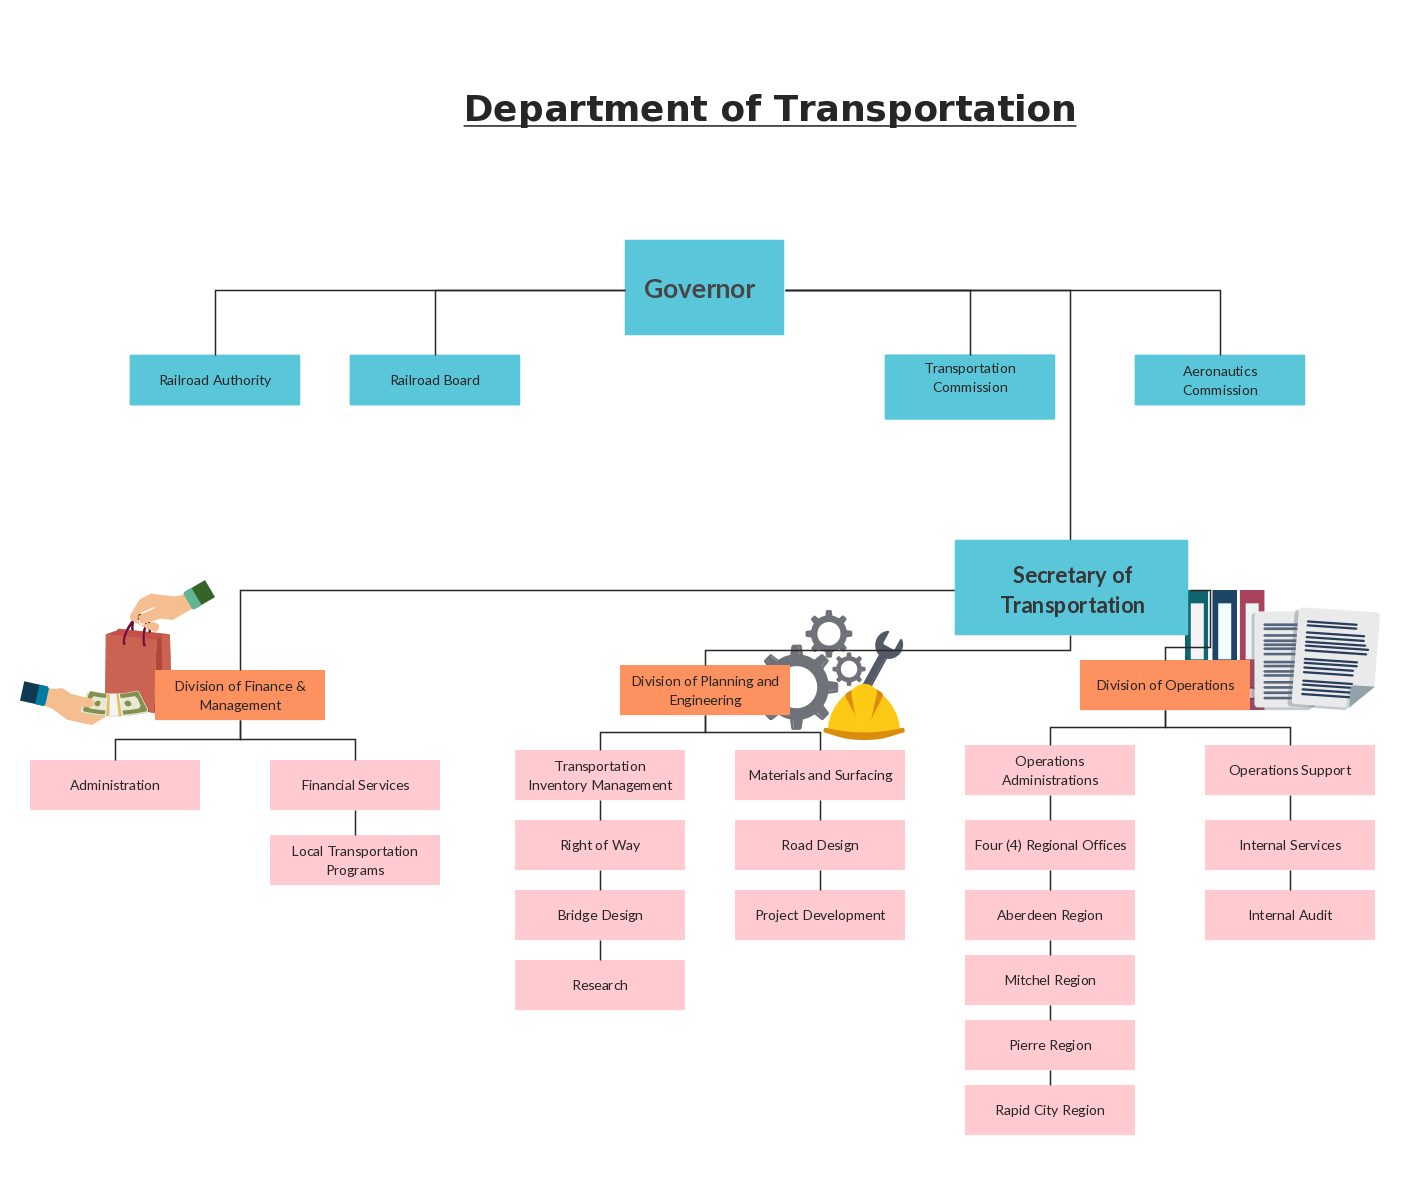 Functional Hierarchy Diagram 1994 Honda Accord Engine Organization In The Department Of Transportation